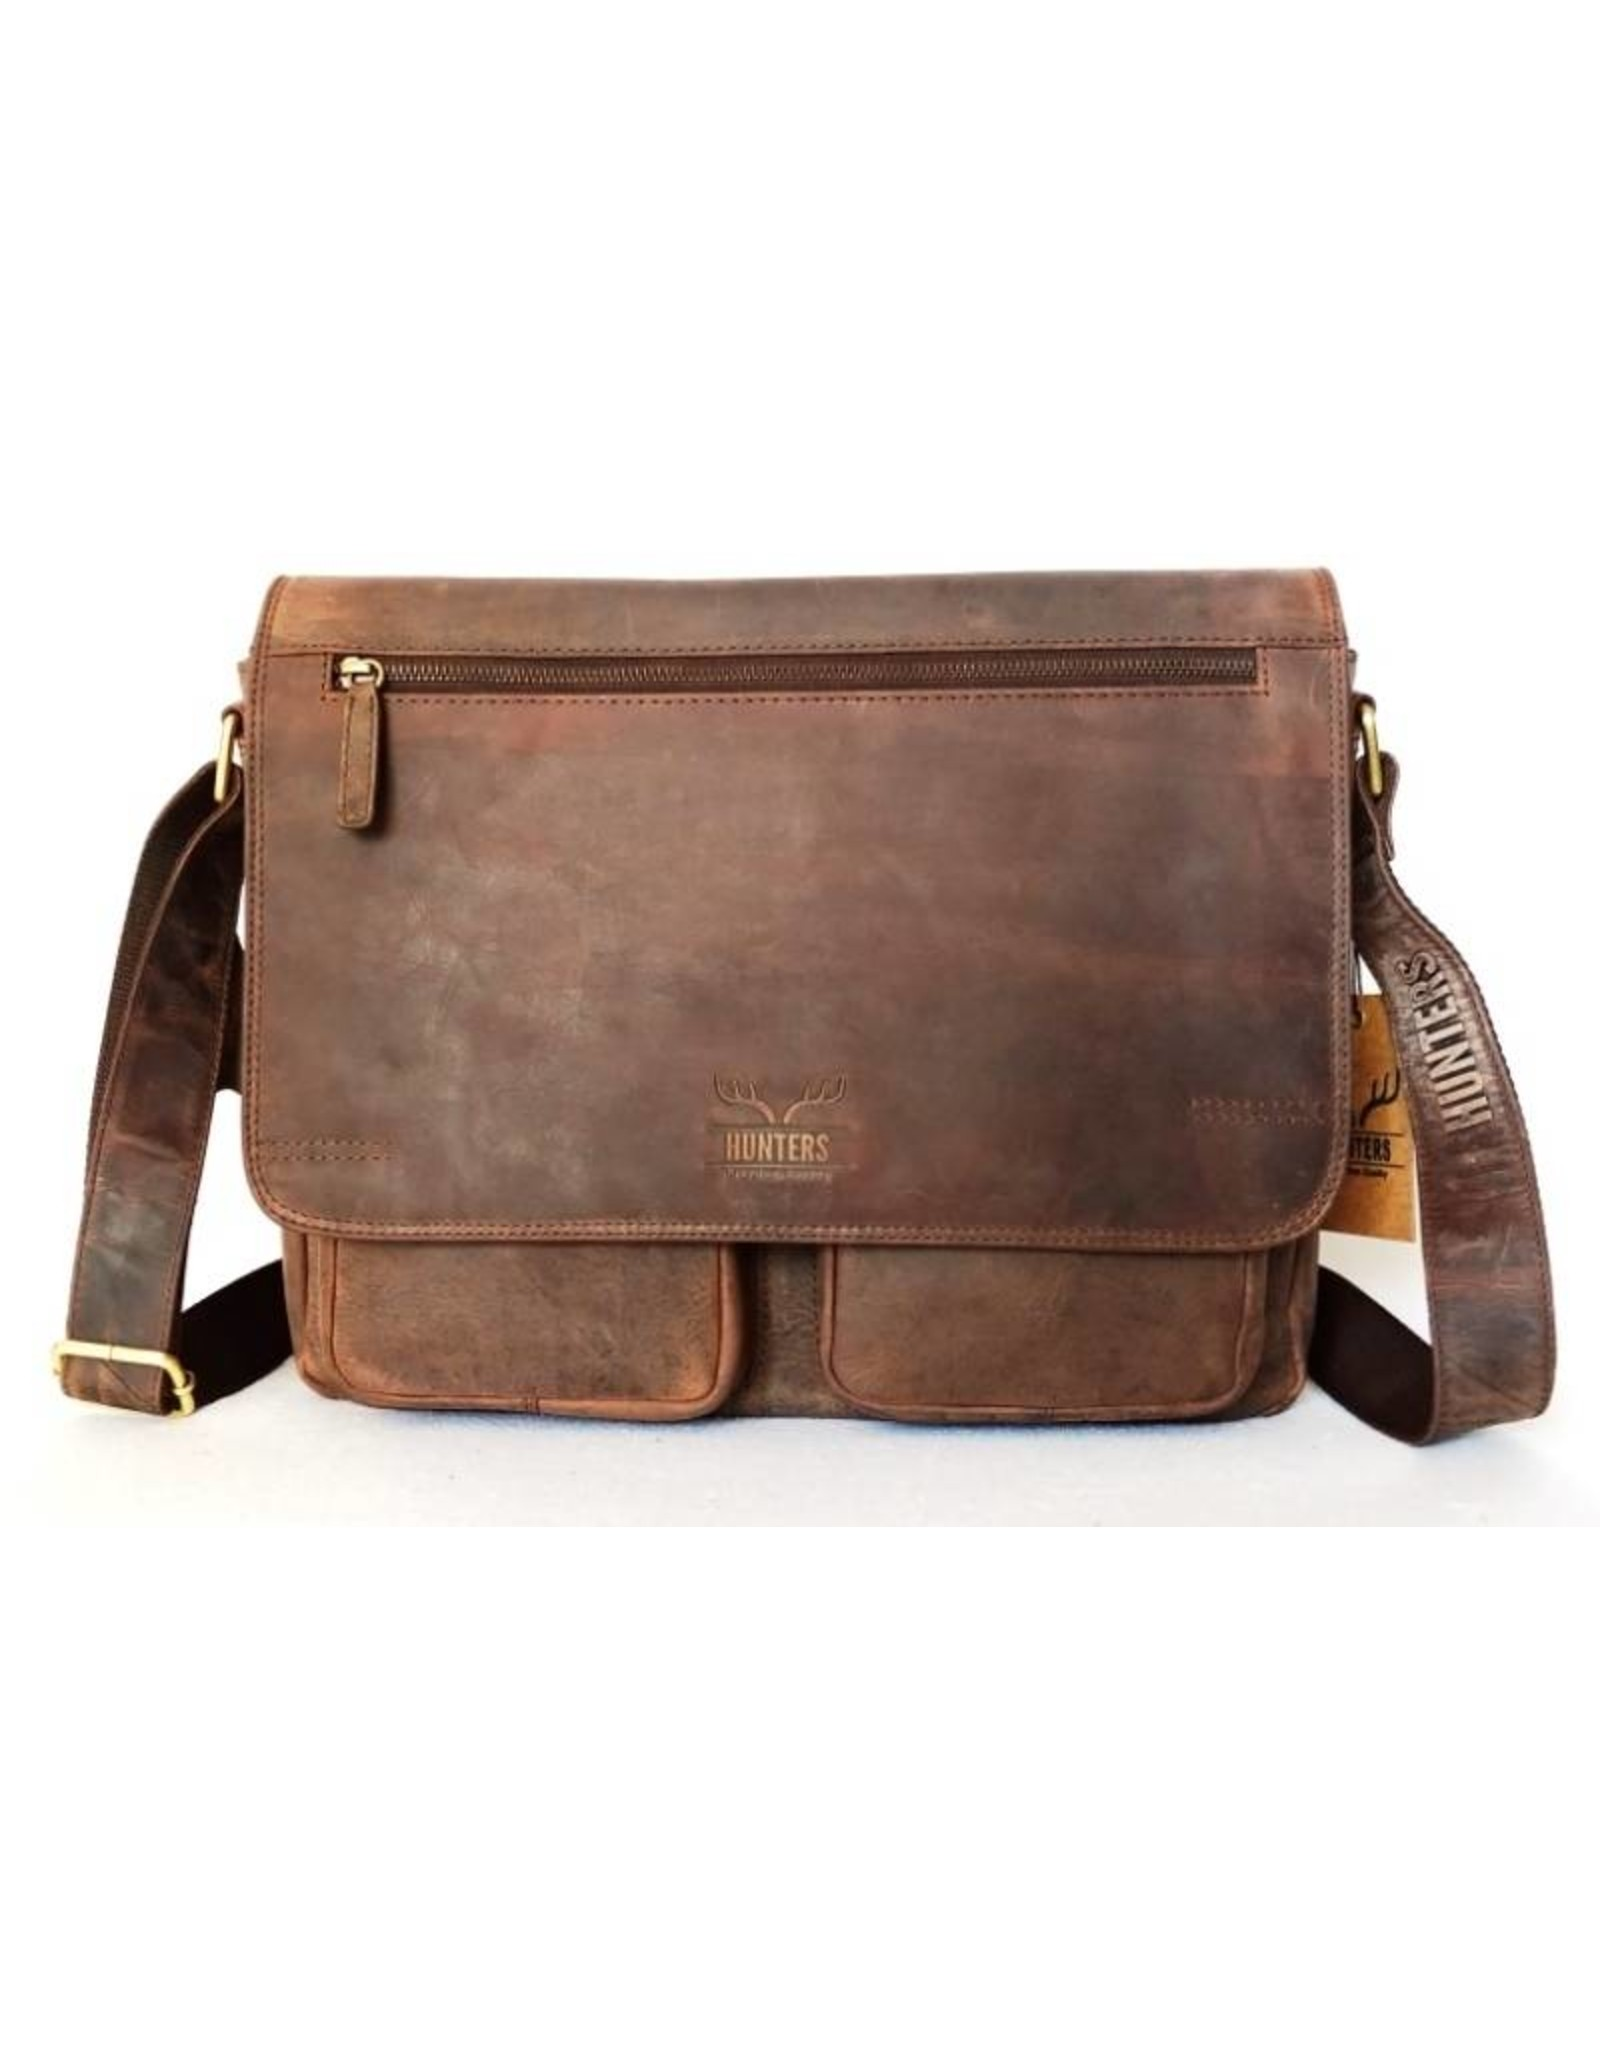 Hunters Leather bags - Hunters leather laptop bag (Buffalo leather)